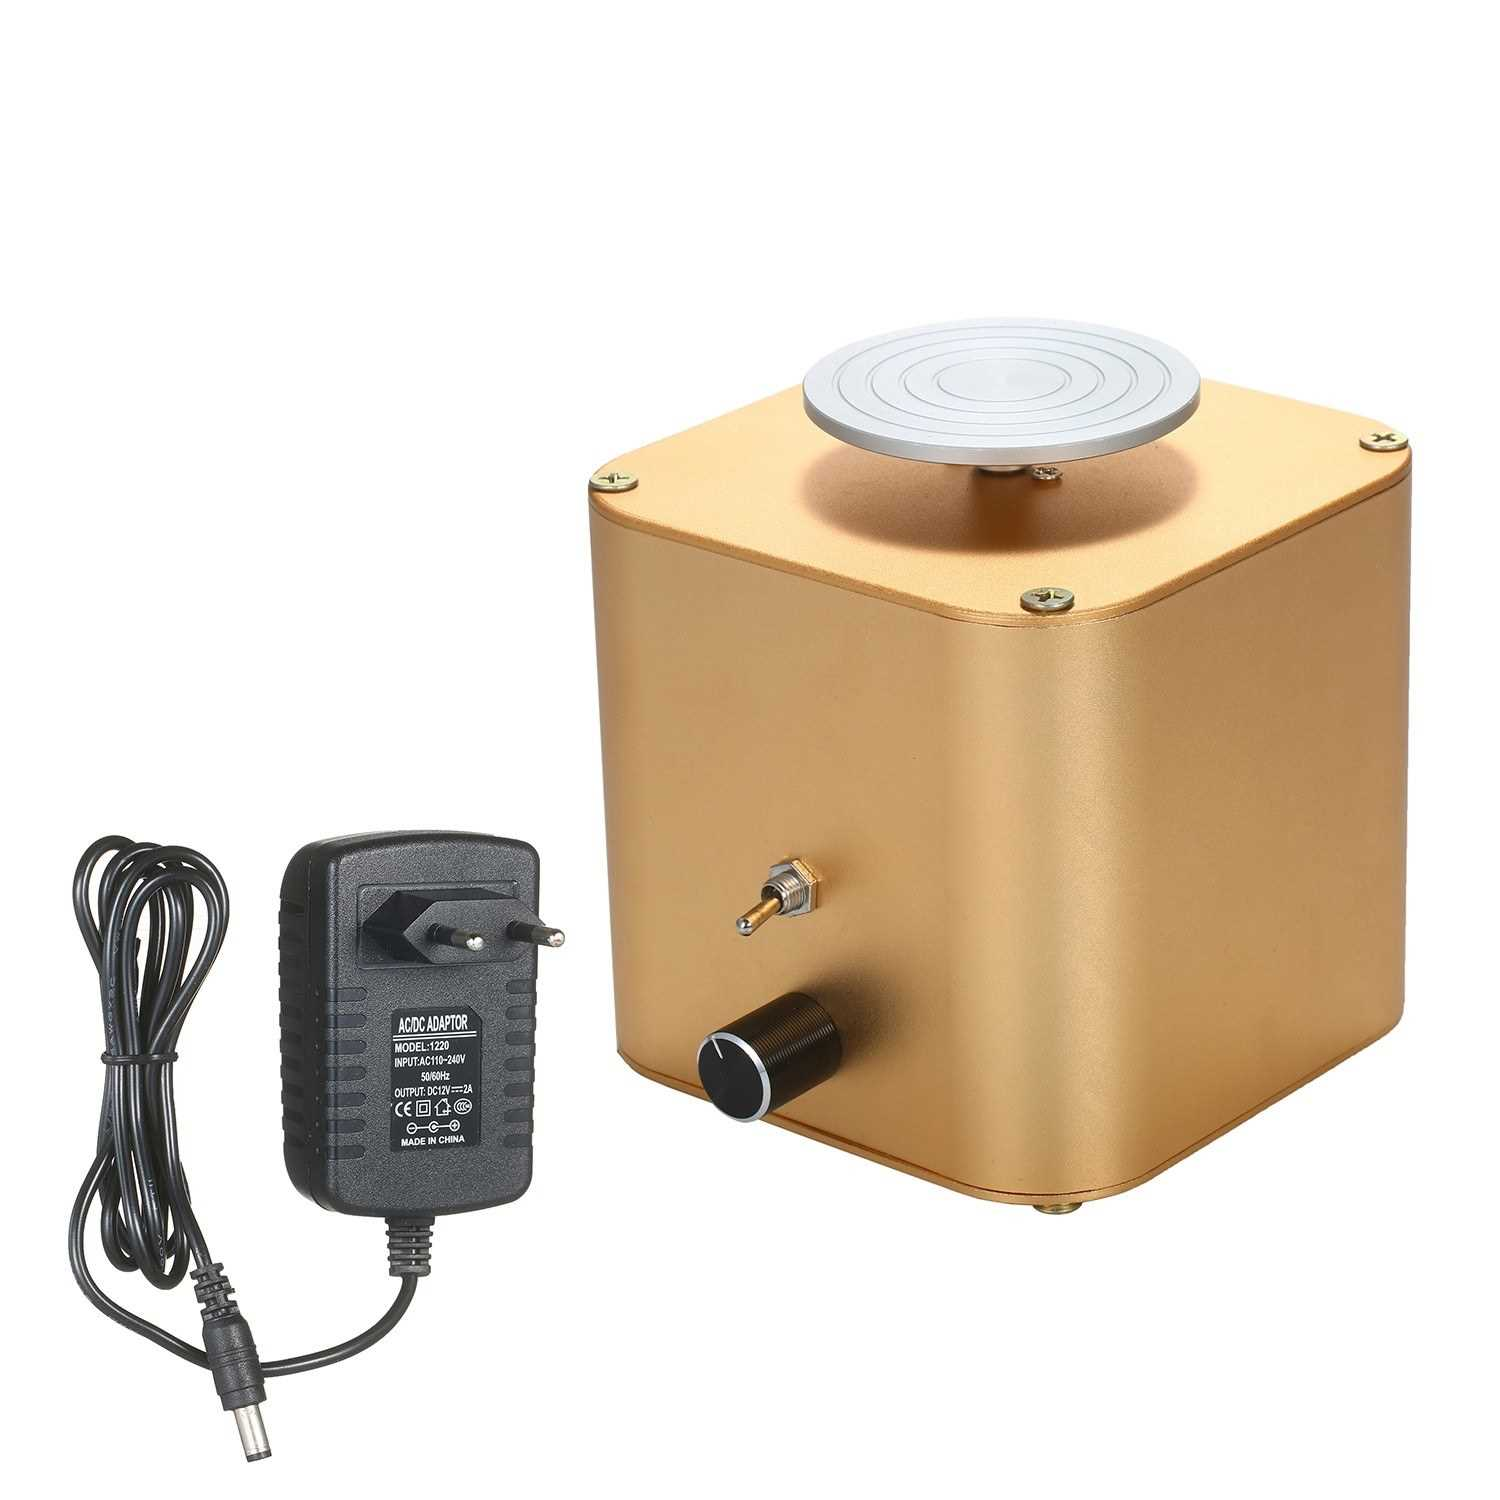 [ MEDUSA ] Electric Pottery Wheel Ceramic Machine with 6cm Turntable Clay Sculpting Wheel with Variable Speed and Clockwise/Anticlockwise Rotation for Adults Kids Beginners (Gold)